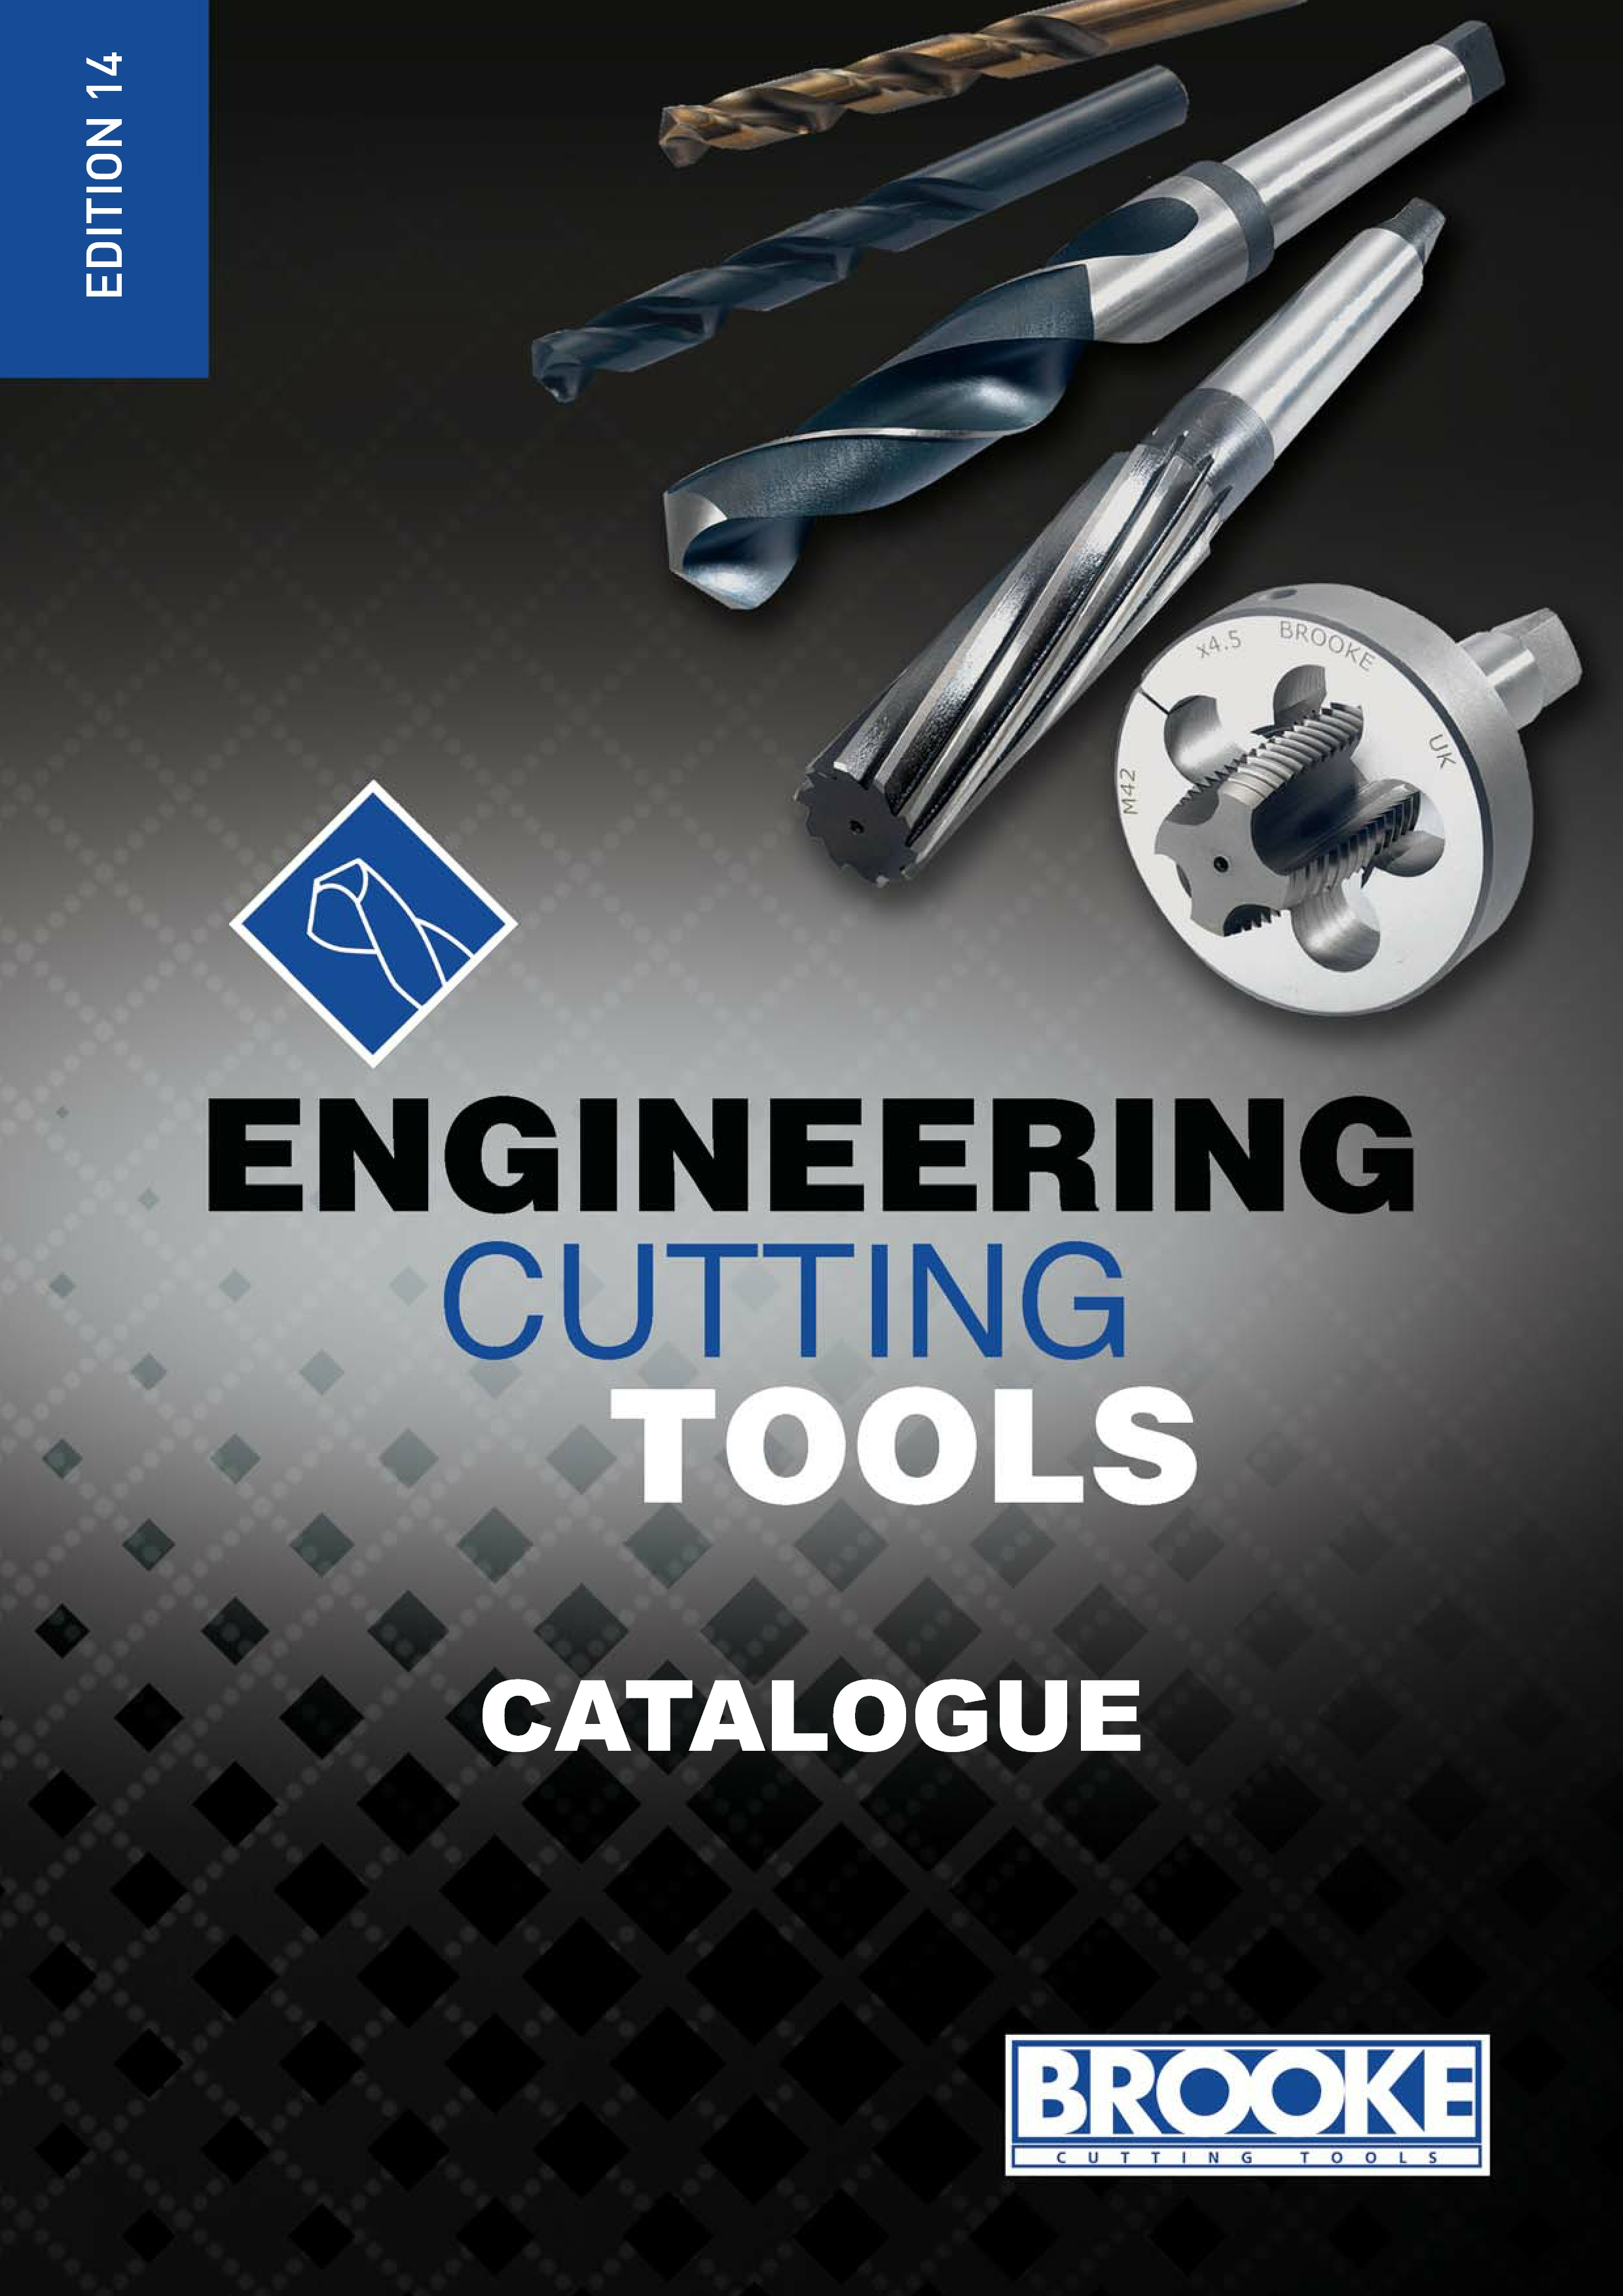 Brooke Engineering Cutting Tools Catalogue